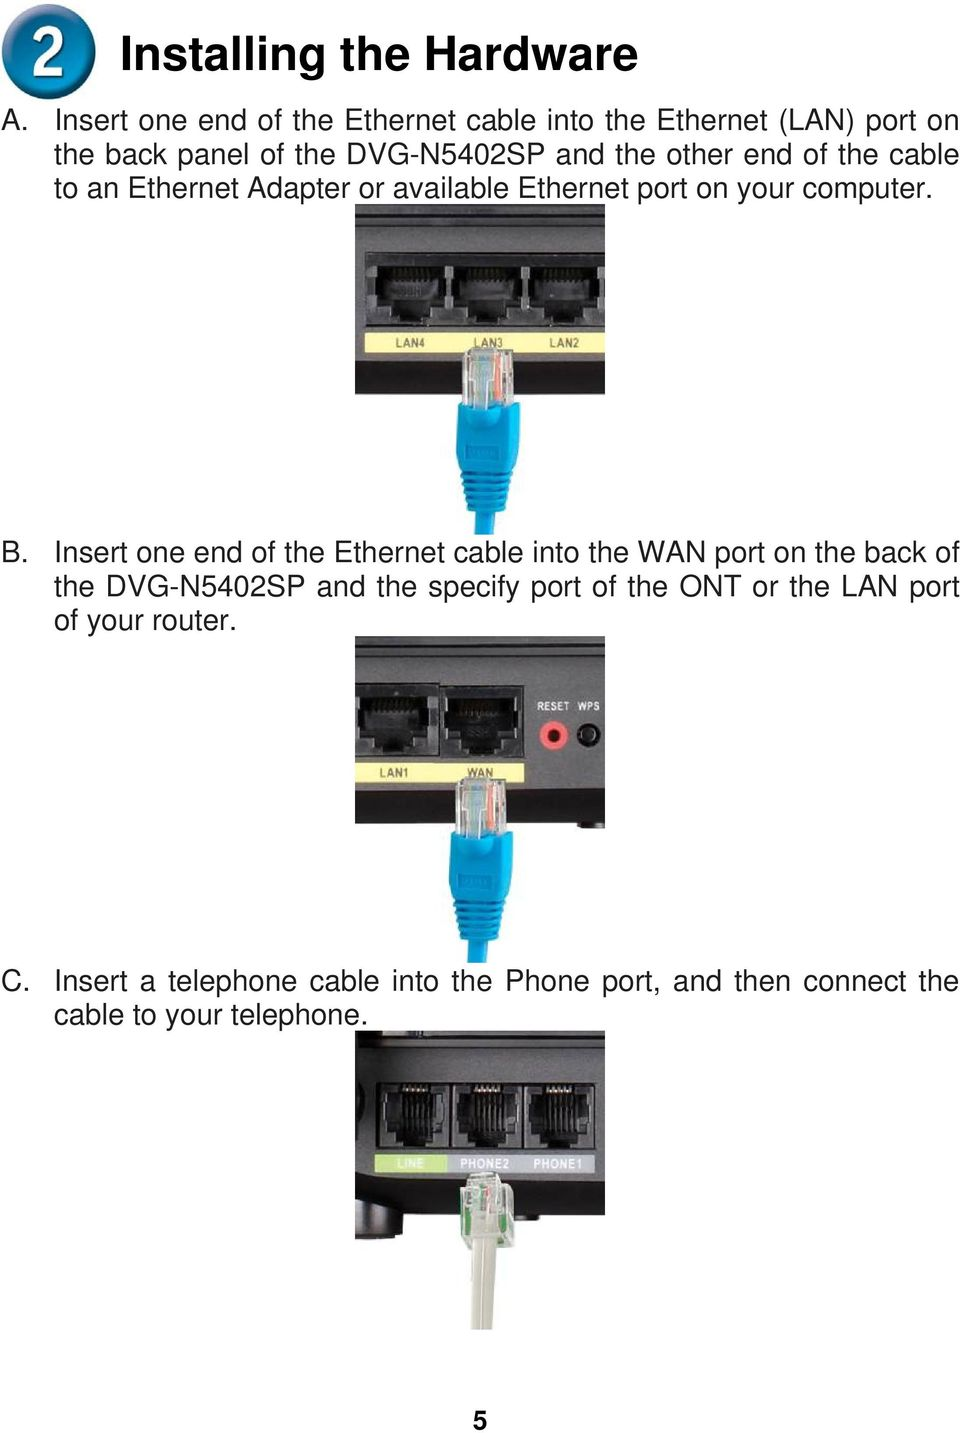 end of the cable to an Ethernet Adapter or available Ethernet port on your computer. B.